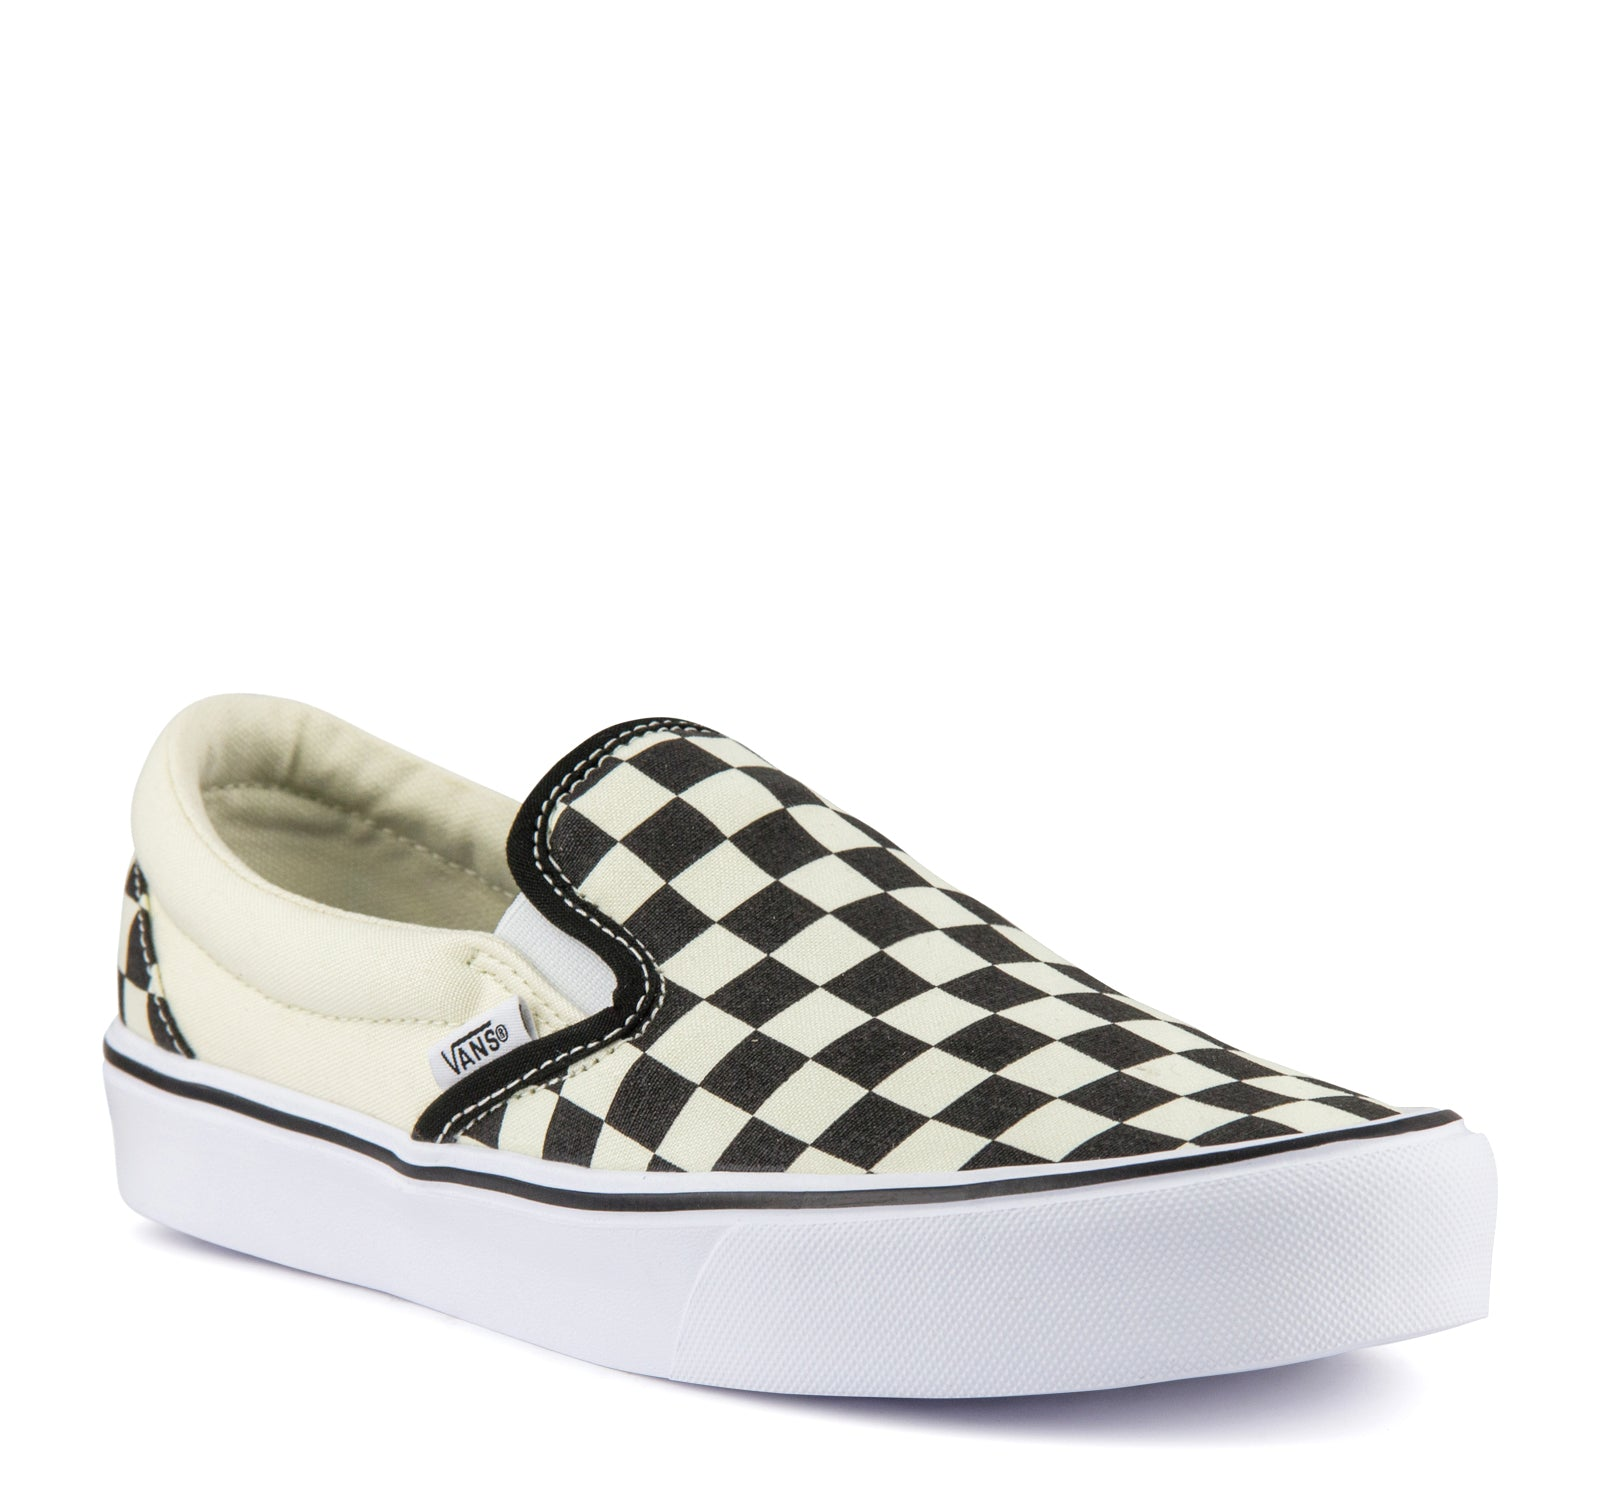 92bc24e5cdecab Vans Slip-On Lite Sneaker in Checkerboard – On The EDGE